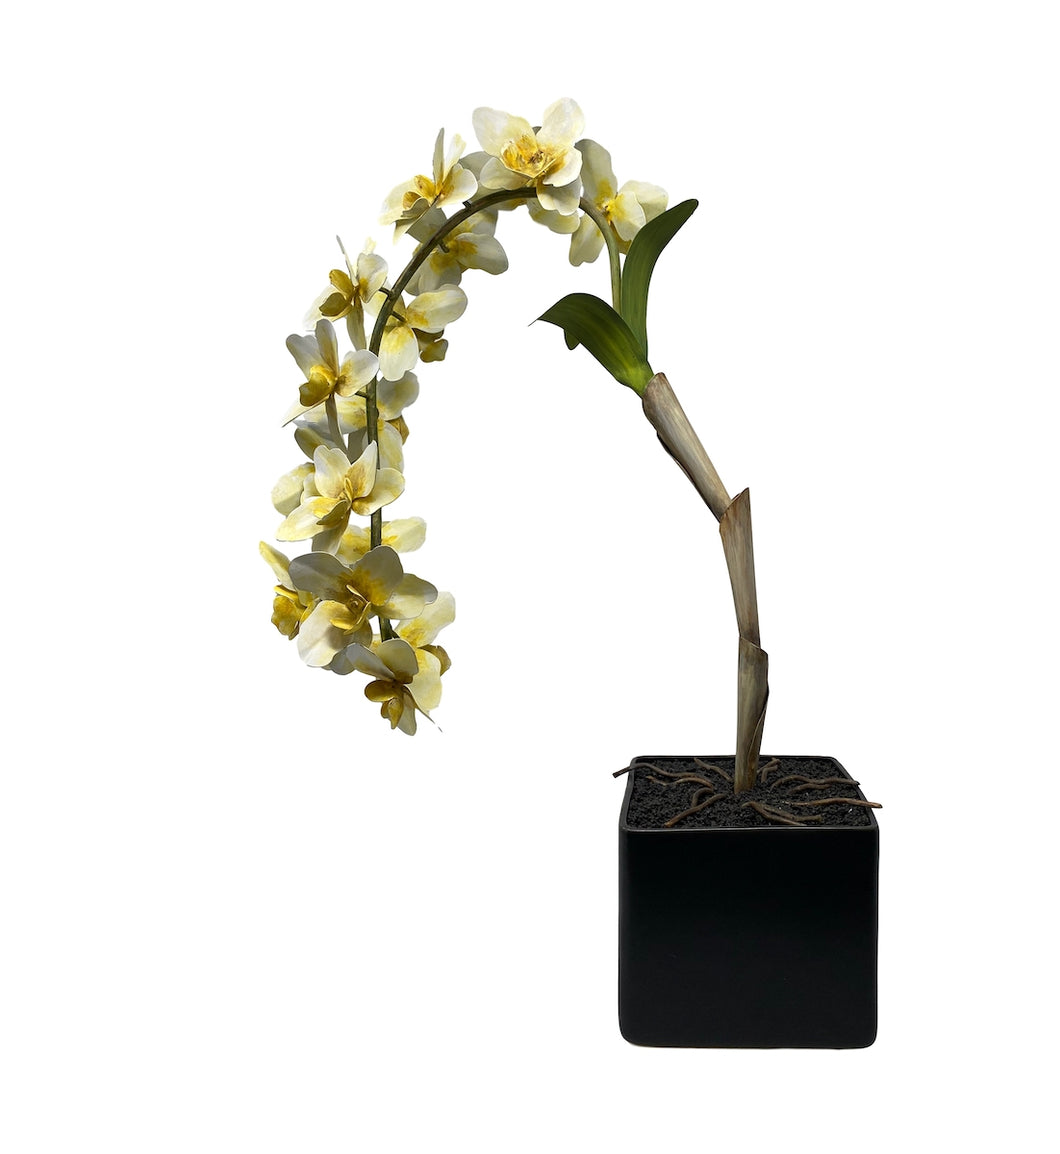 Tommy Mitchell Potted Fleur - Large Soft Yellow Orchid